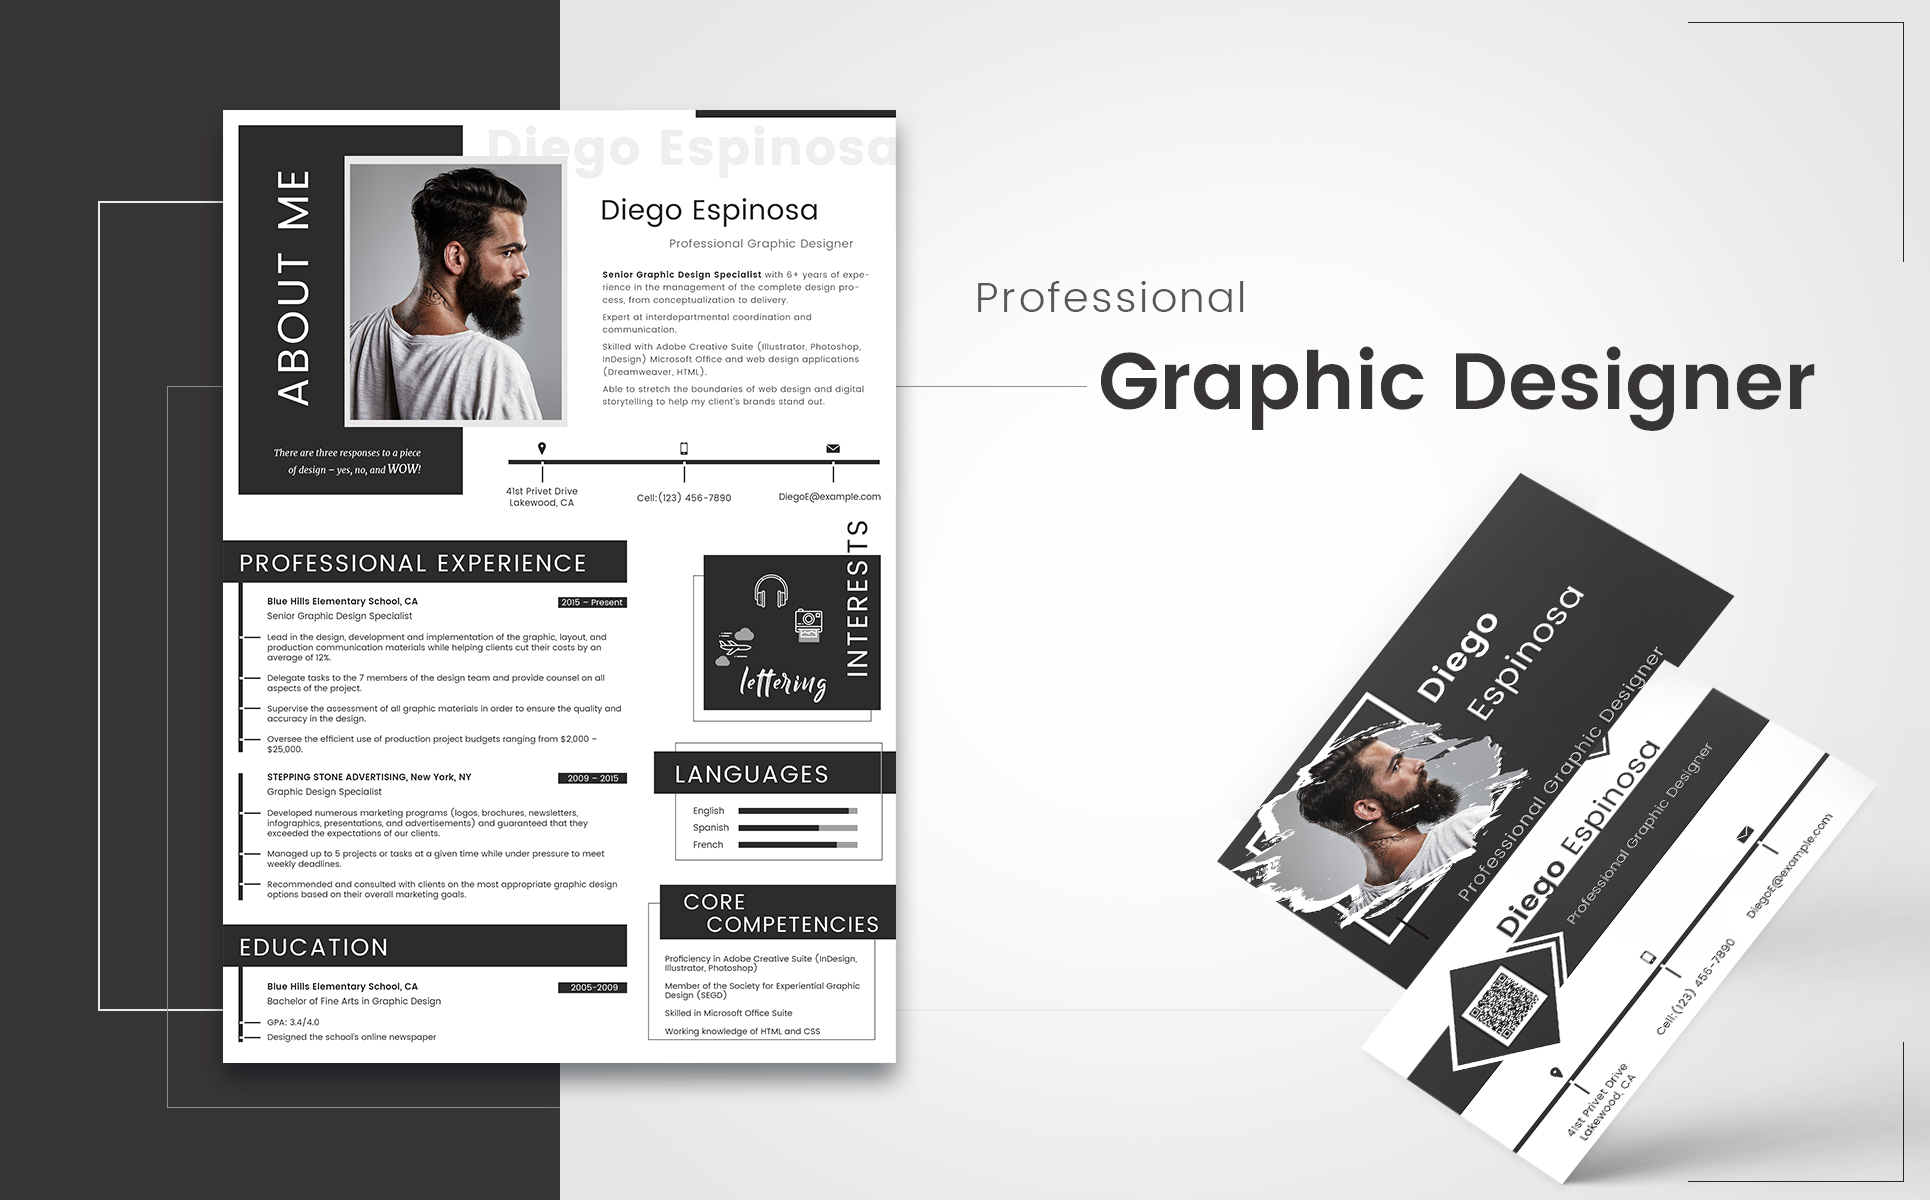 diego espinosa graphic designer resume template big screenshot